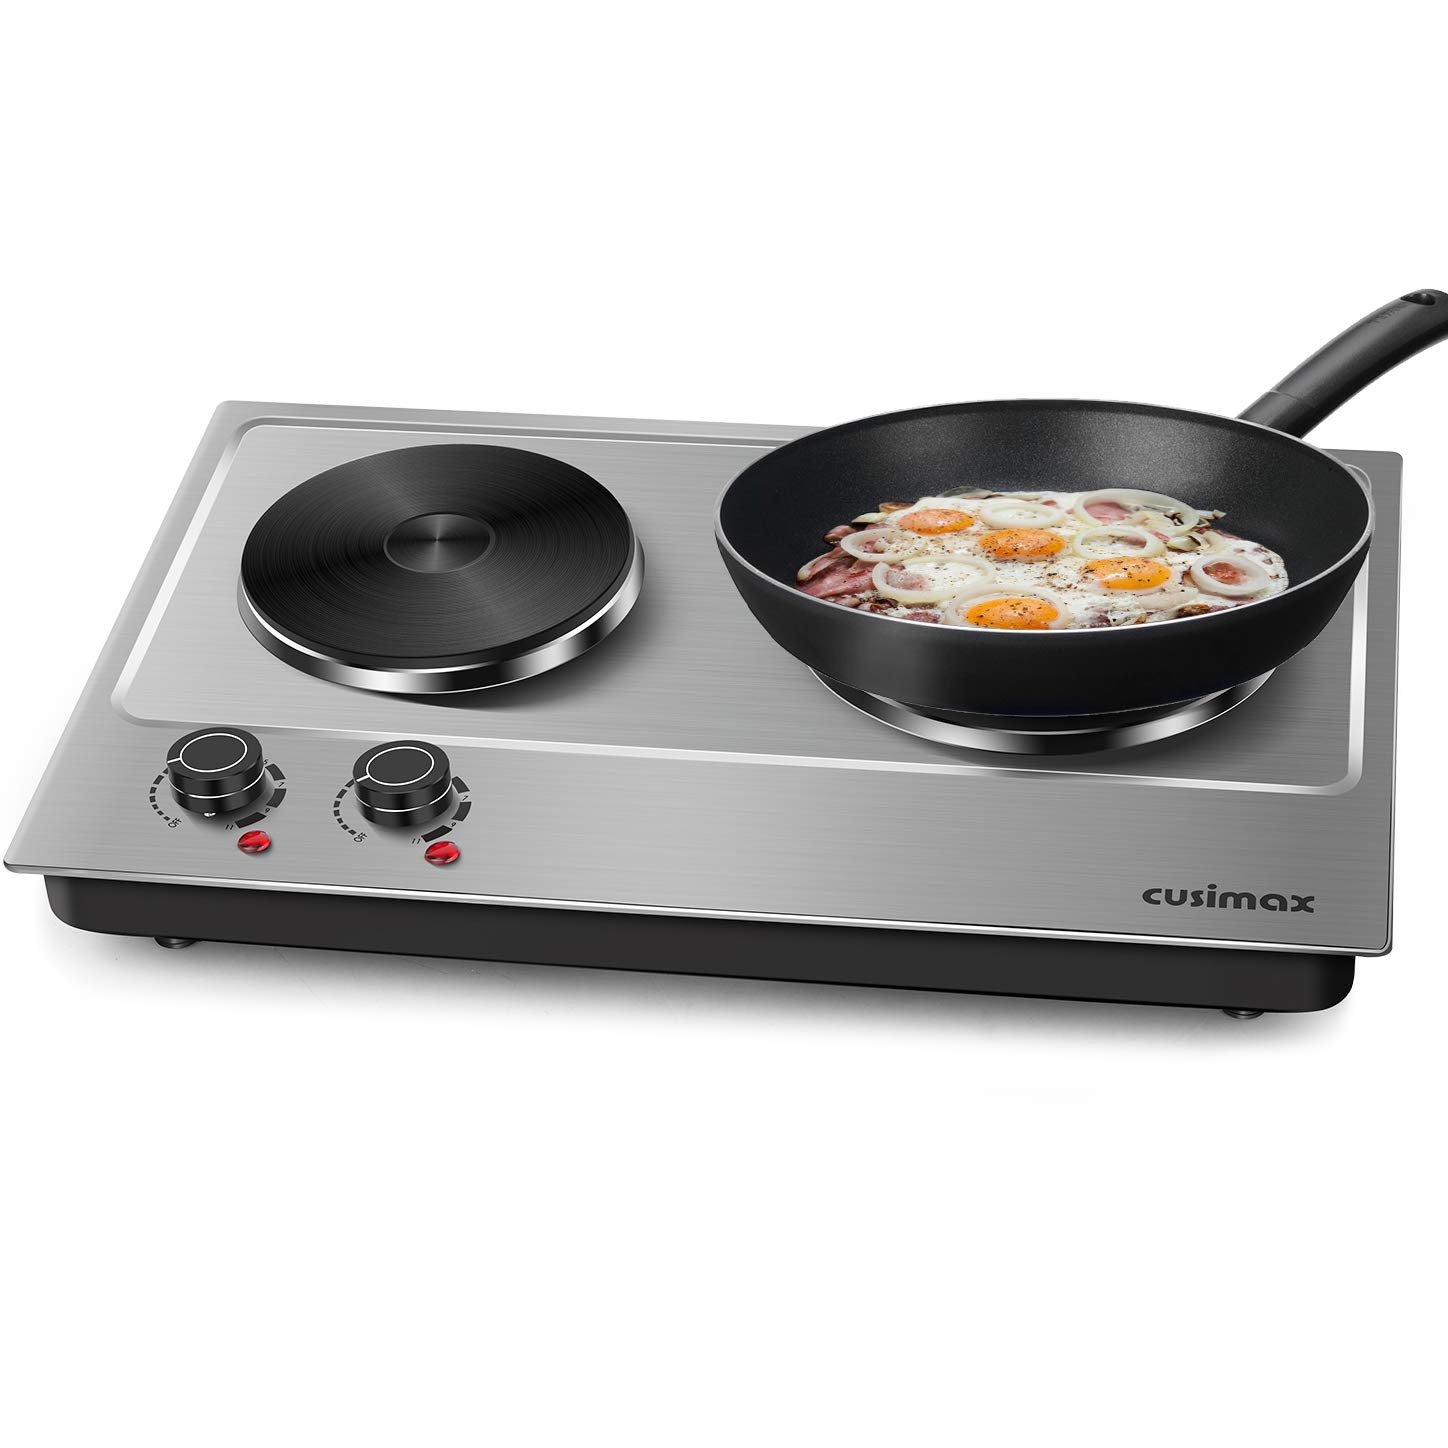 Cusimax 1800W Double Hot Plate, Stainless Steel Countertop Burner Portable Electric Double Burners Electric Cast Iron Hot Plates Cooktop, CMHP-C180 by CUSIMAX